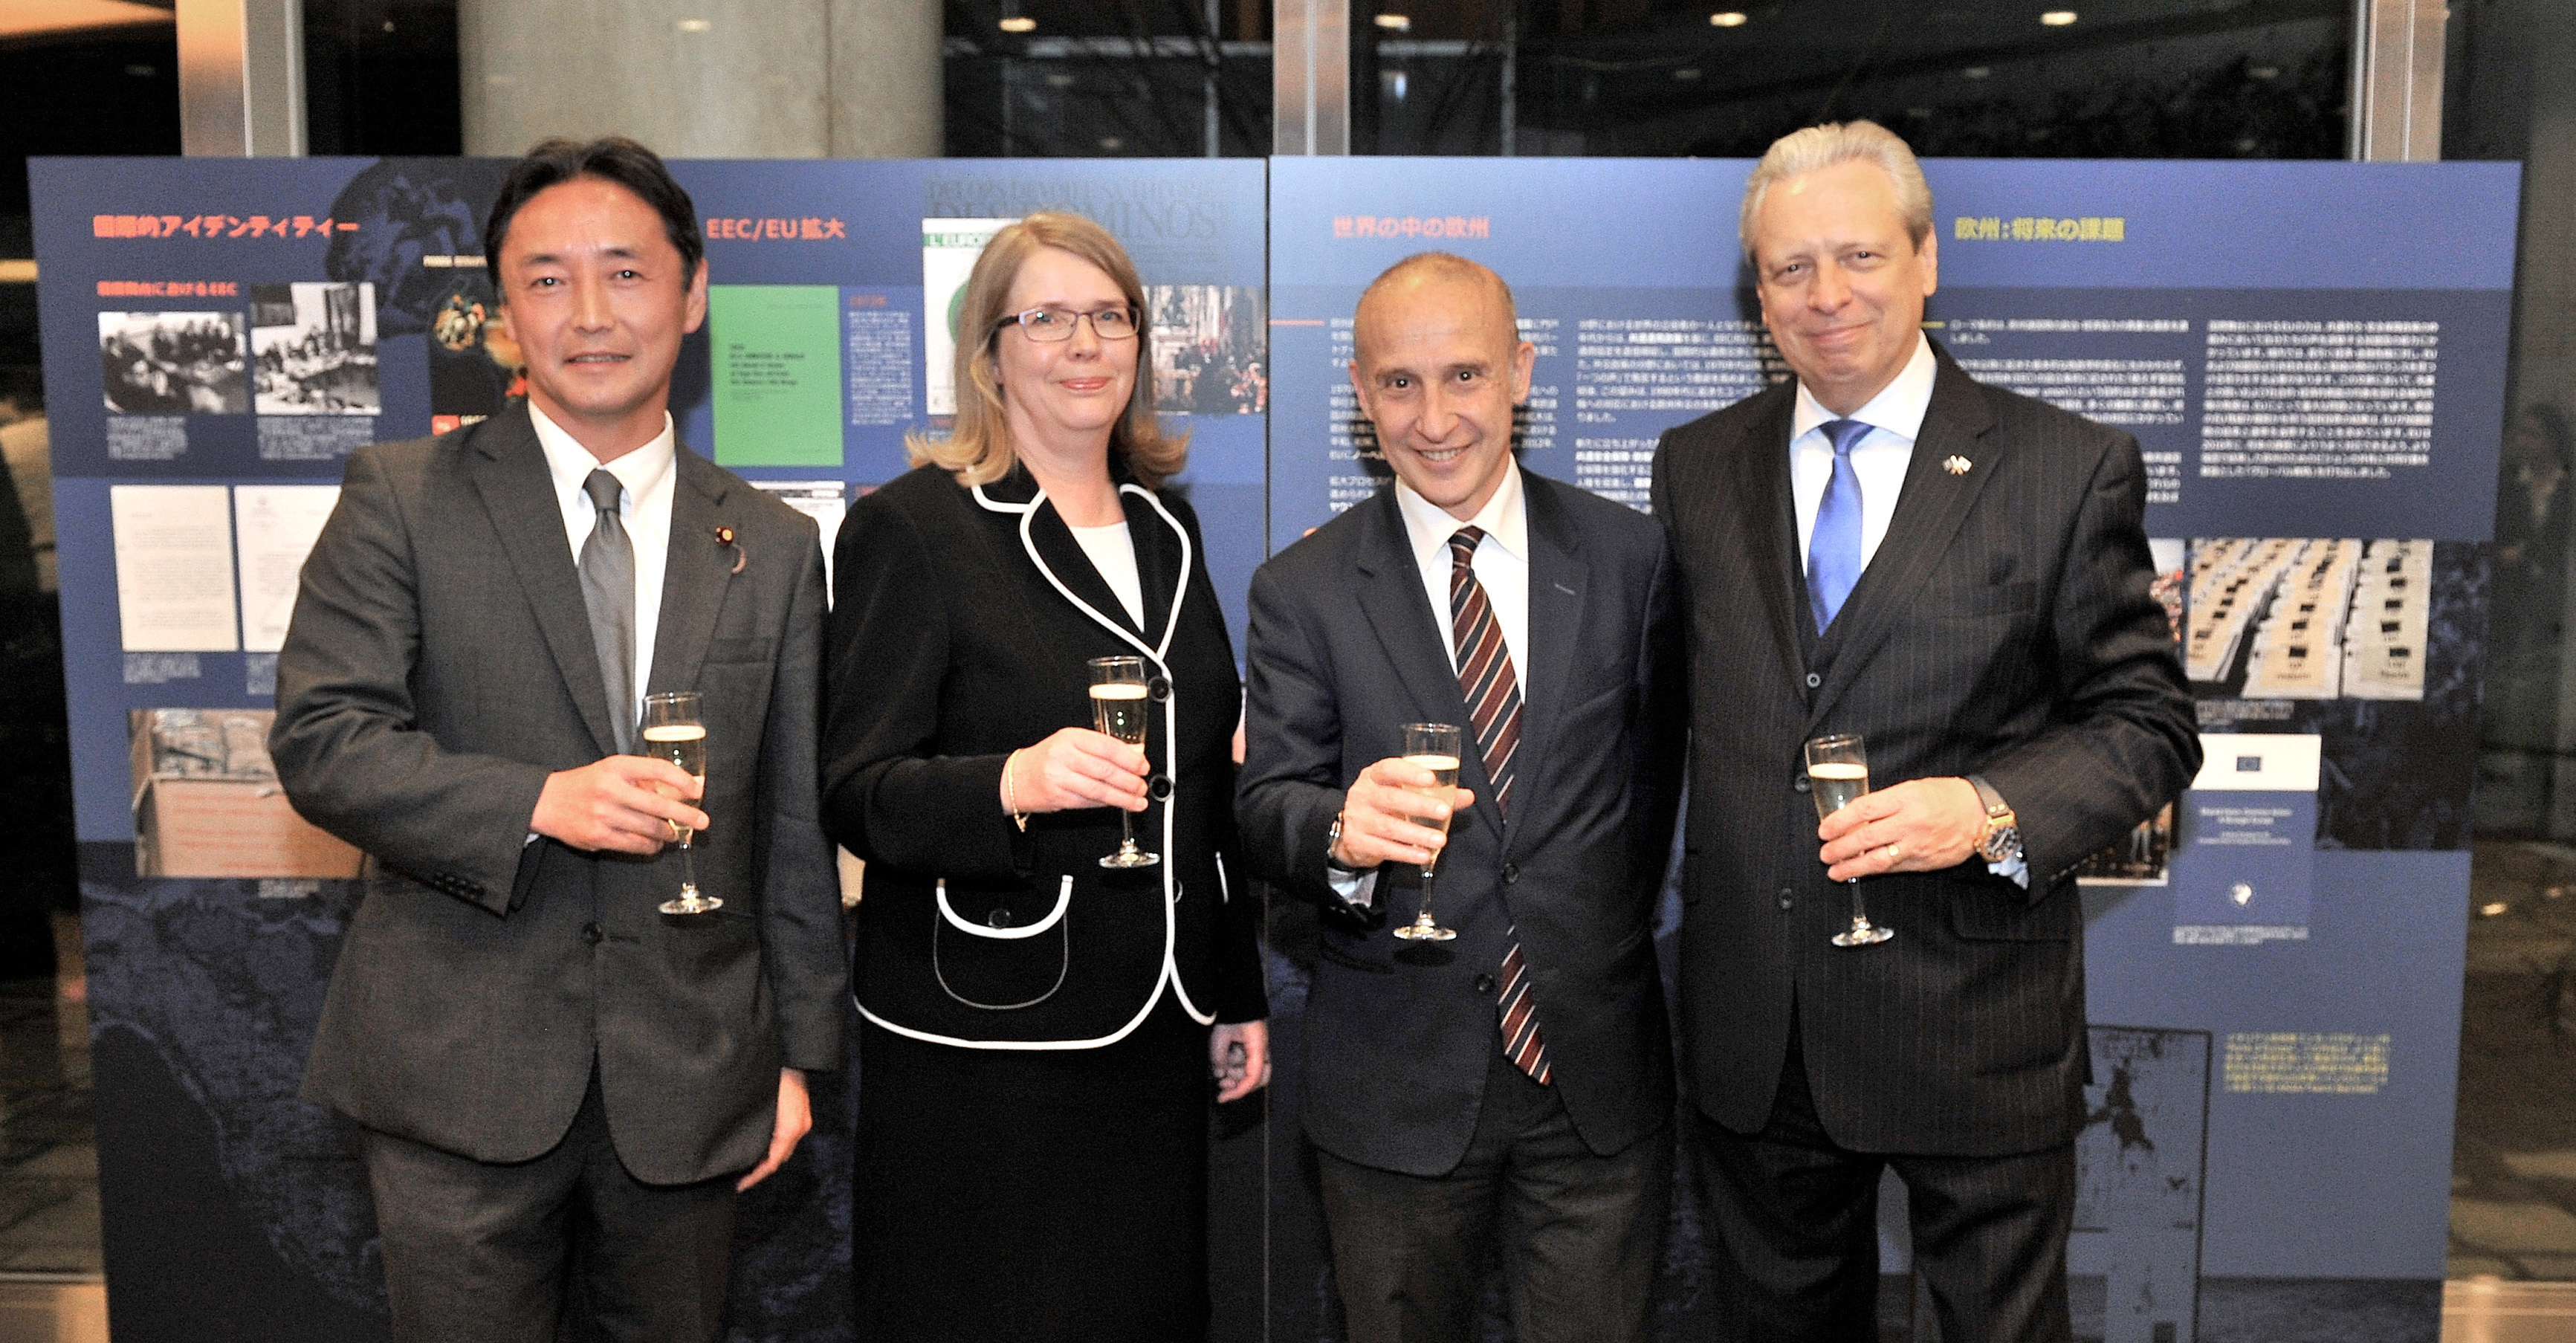 European Union Ambassador Viorel Isticioaia-Budura (right) poses with (from left) House of Representatives member and Secretary-General of the Japan-EU Parliamentary Friendship League Masazumi Gotoda,  Finland's Under Secretary of State for Foreign Affairs Anne Sipilainen and Italy's Ambassador- designate Giorgio Starace at a reception marking the 60th anniversary of the signing of the Treaties of Rome at the Europa House in Tokyo on March 27. |  YOSHIAKI MIURA